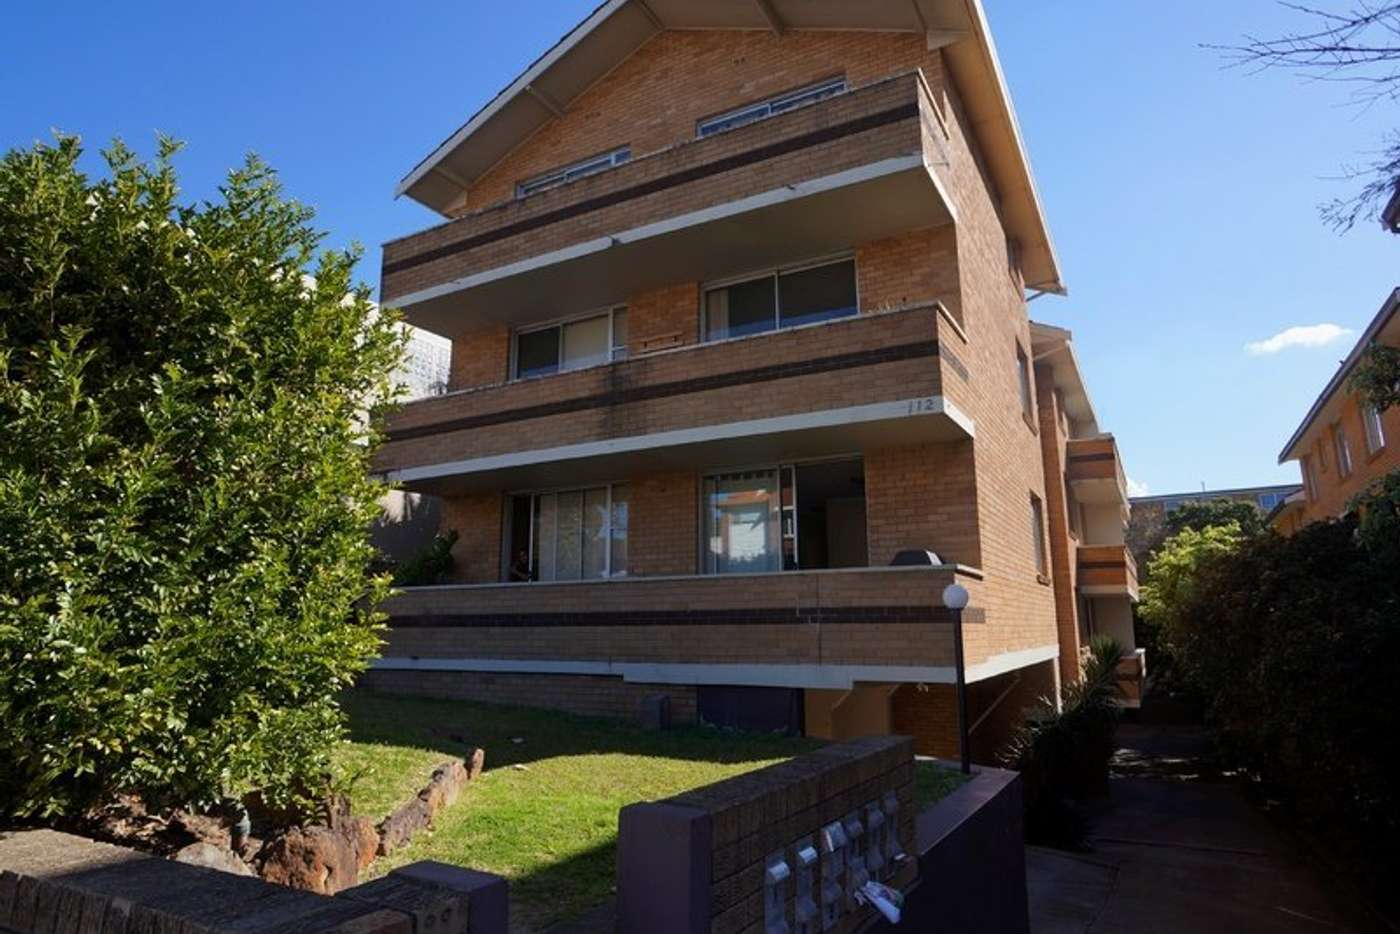 Main view of Homely apartment listing, 7/112 Mount Street, Coogee NSW 2034